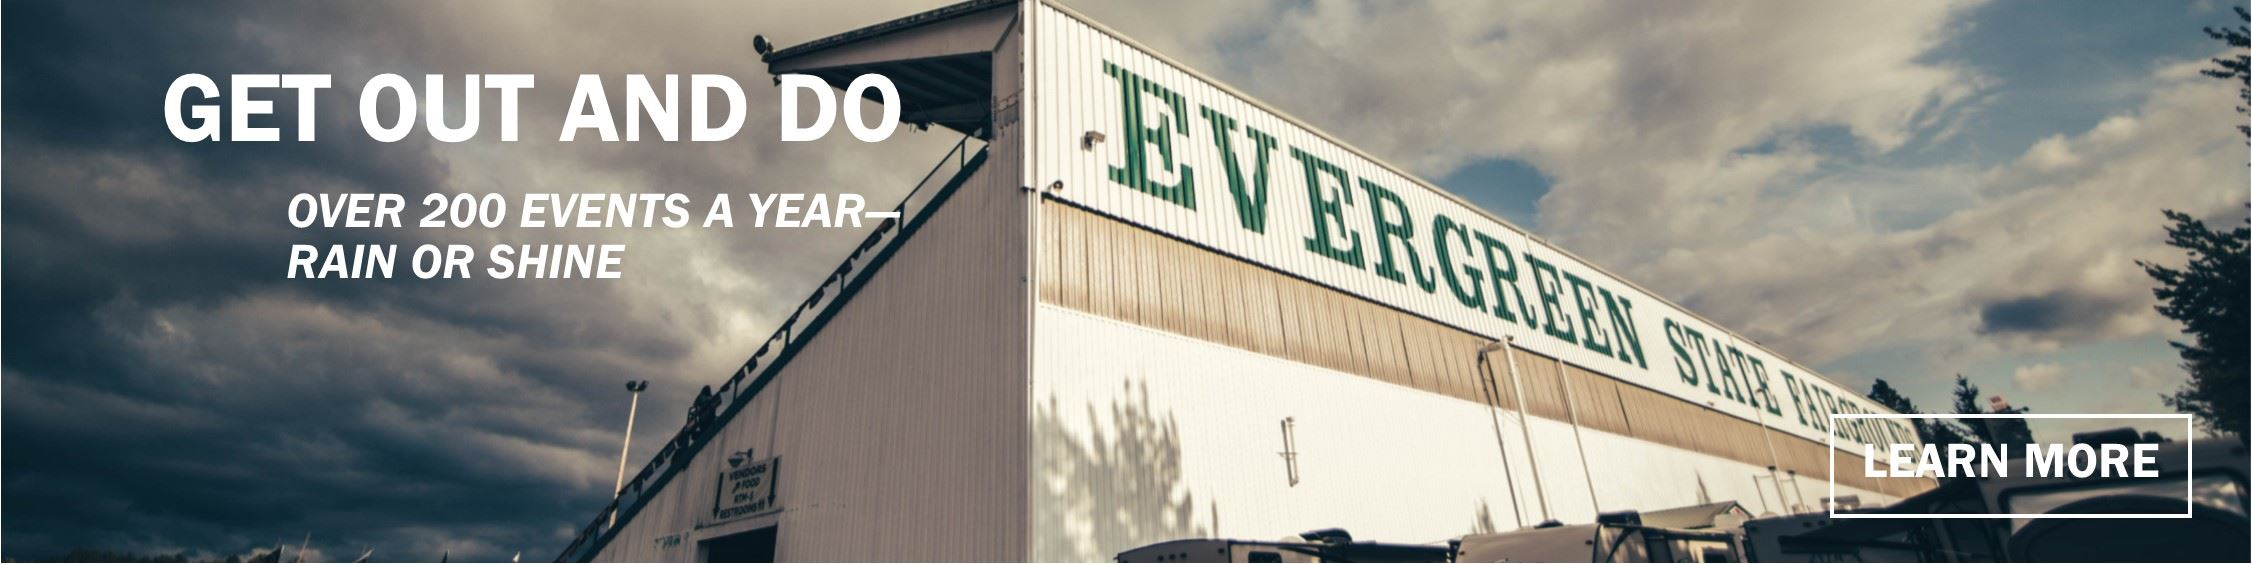 Home Of The Evergreen State Fair Opens In New Window Visit Fairgrounds Year Round For Events Click To Learn More